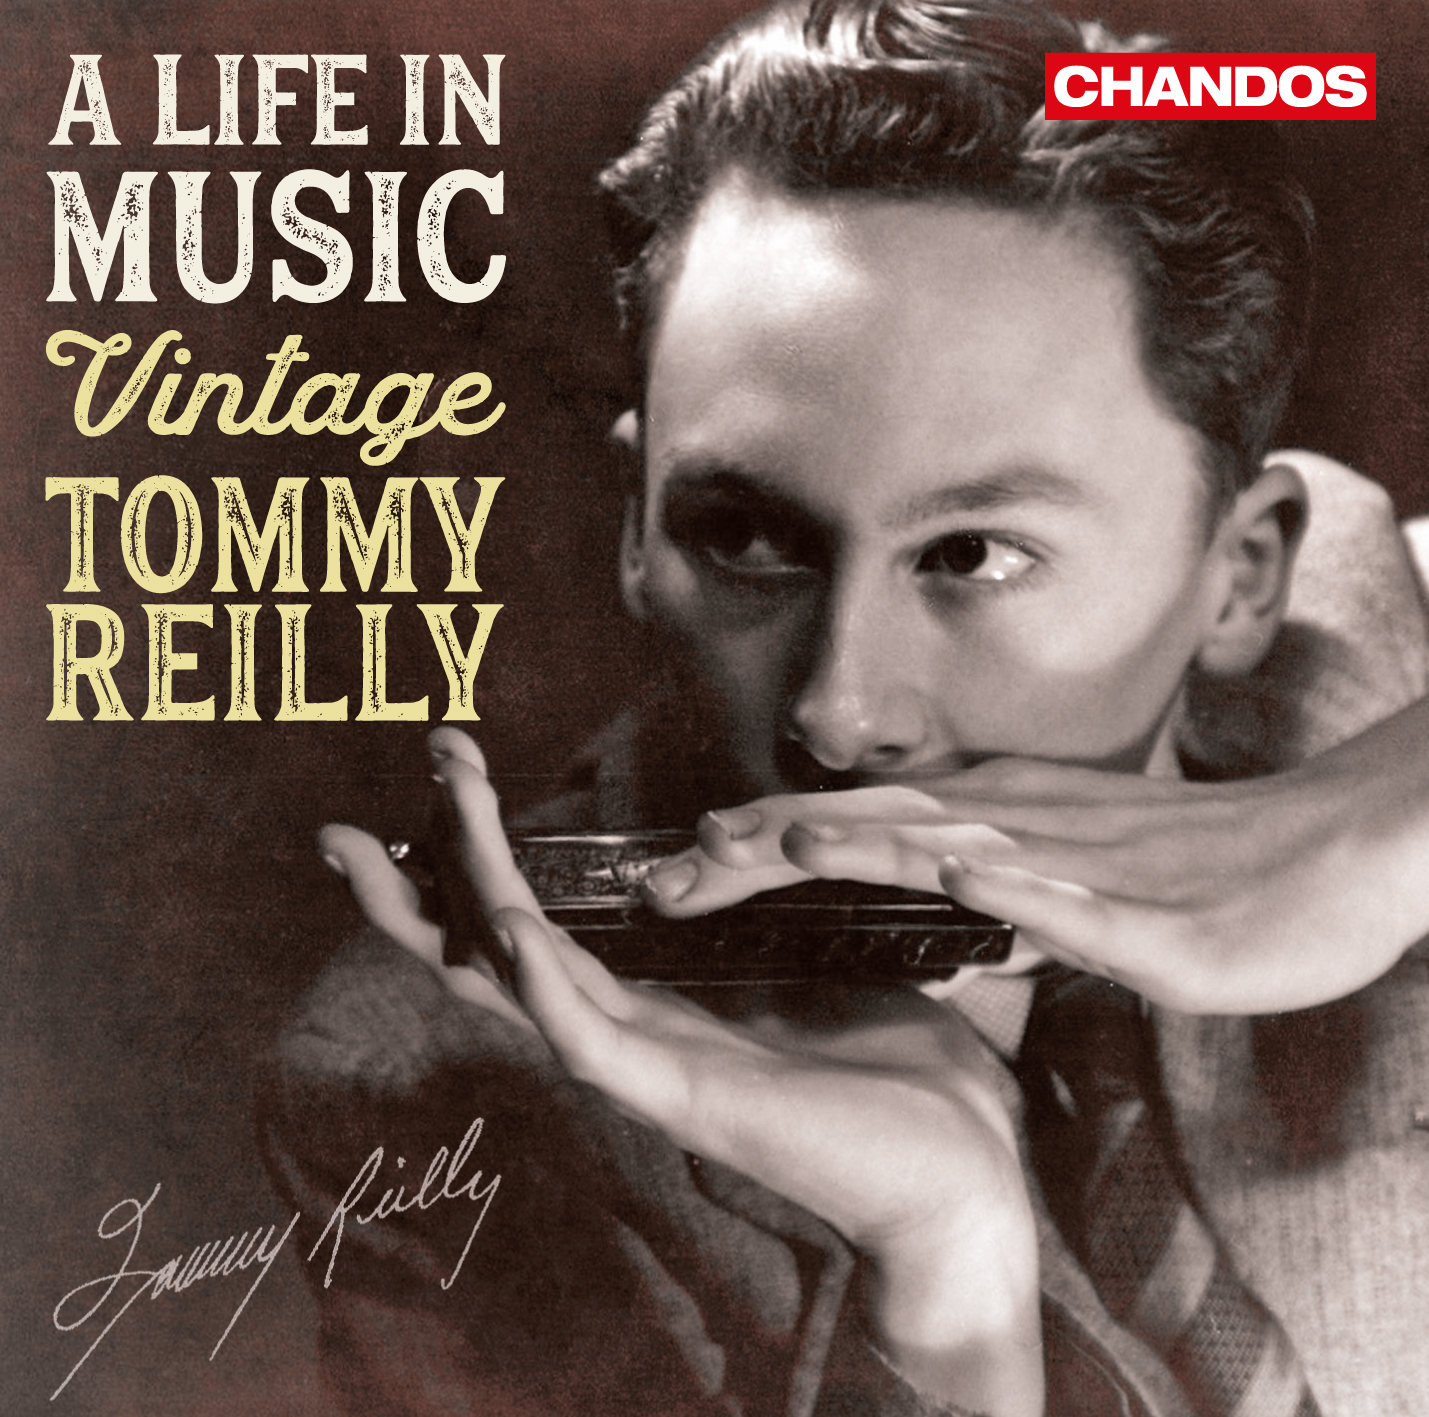 d29067e9 A Life in Music - Vintage Tommy Reilly Compilations & Collections ...